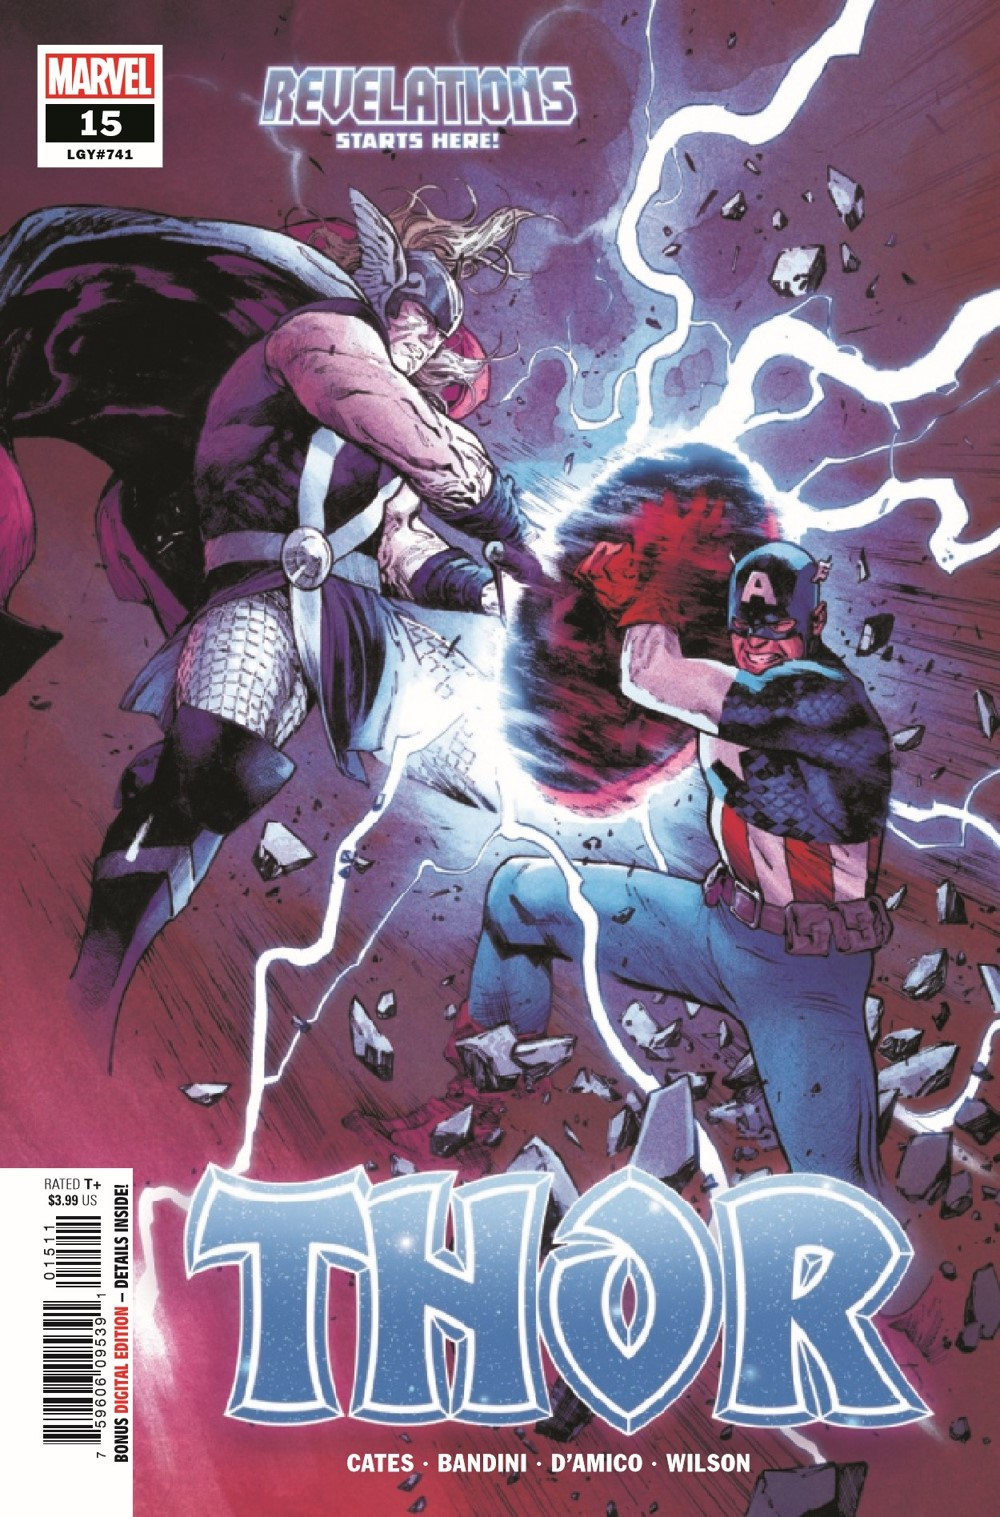 THOR2020015_Preview-1 ComicList Previews: THOR #15